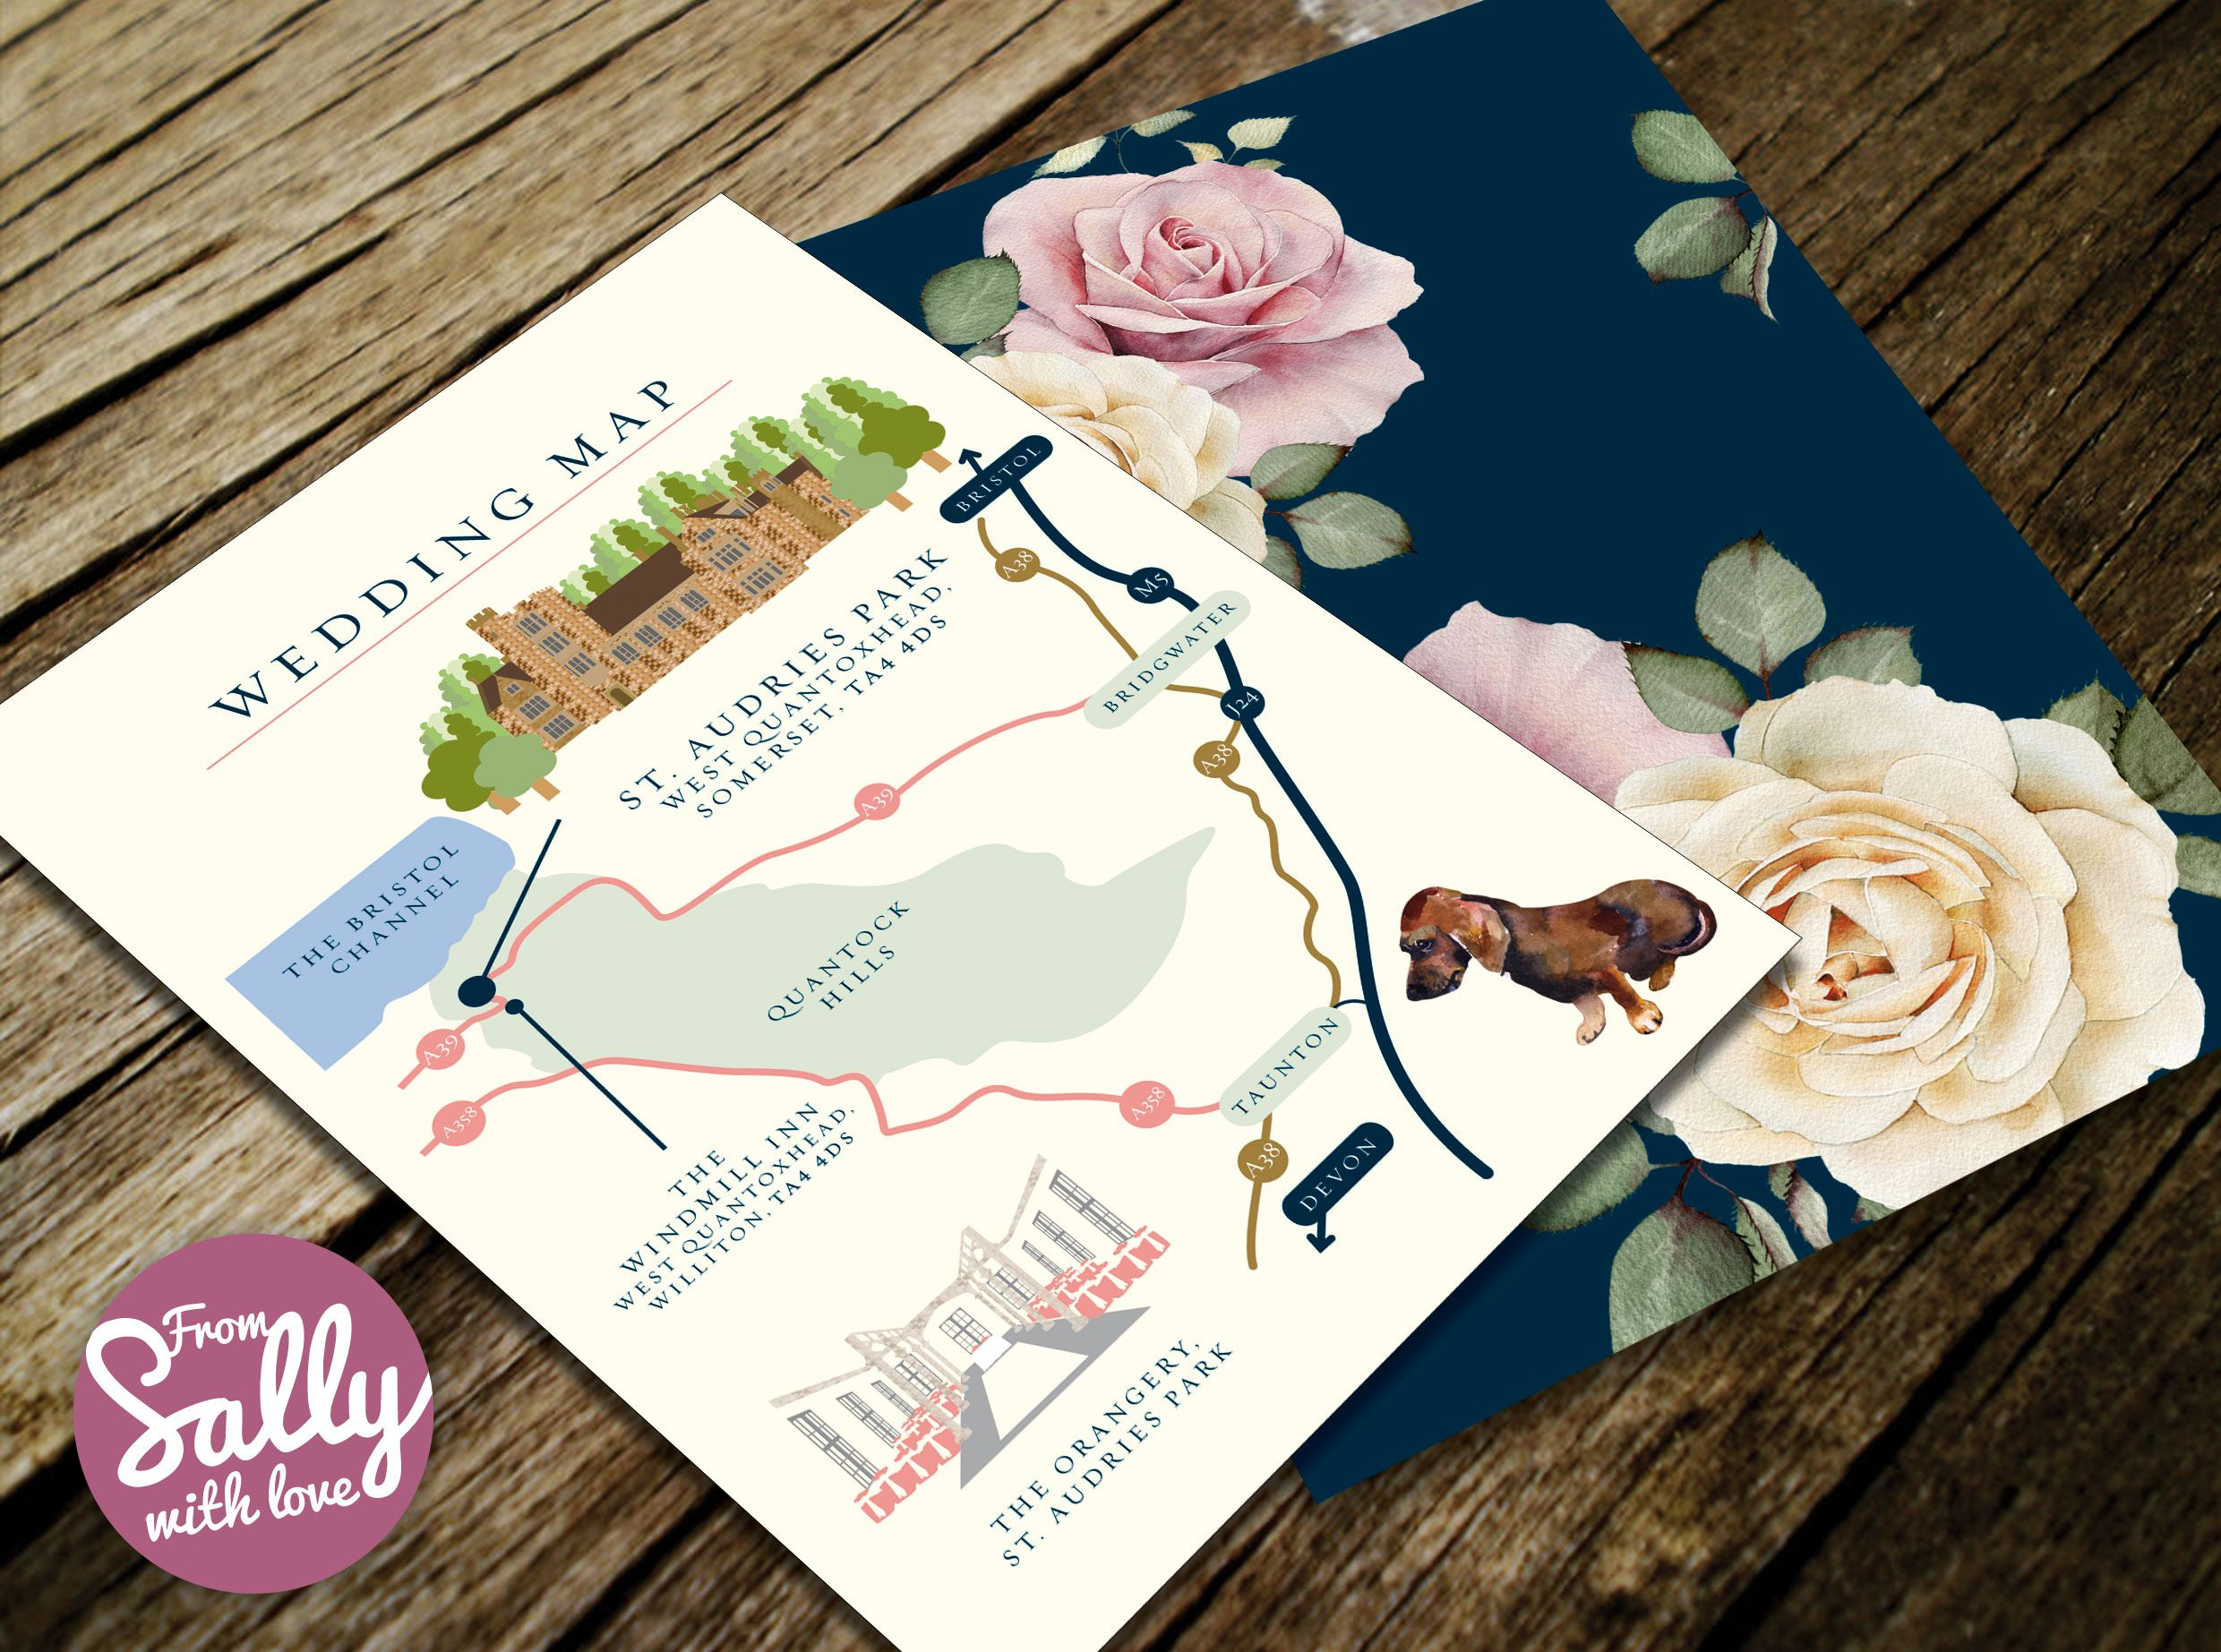 Pin by From Sally with Love - bespoke wedding stationery on Bespoke ...